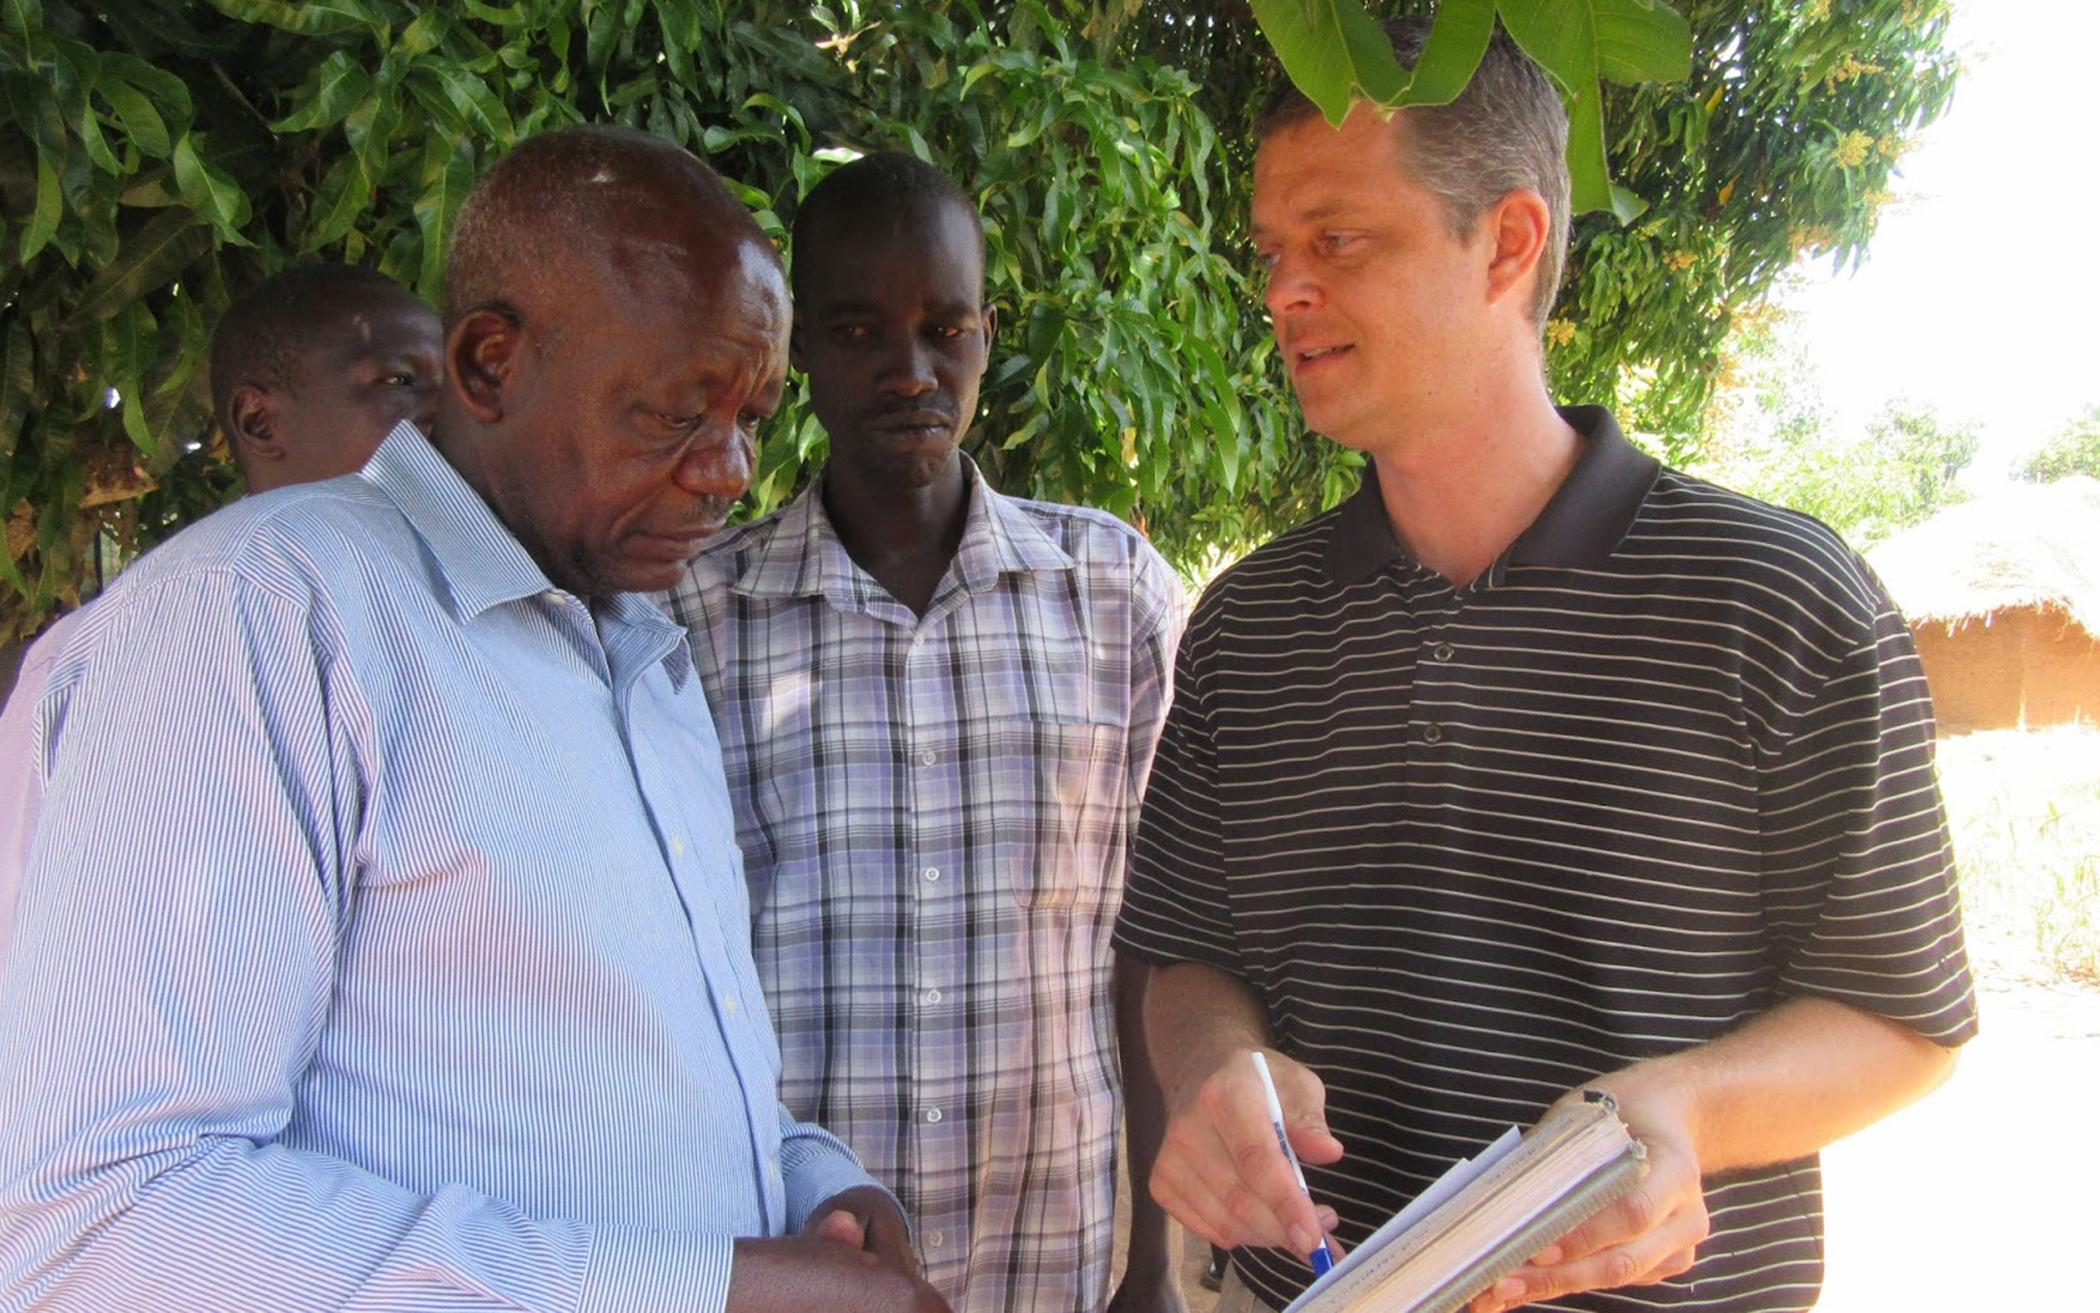 Uganda Prison Ministry: 'You Will Be the Ones'